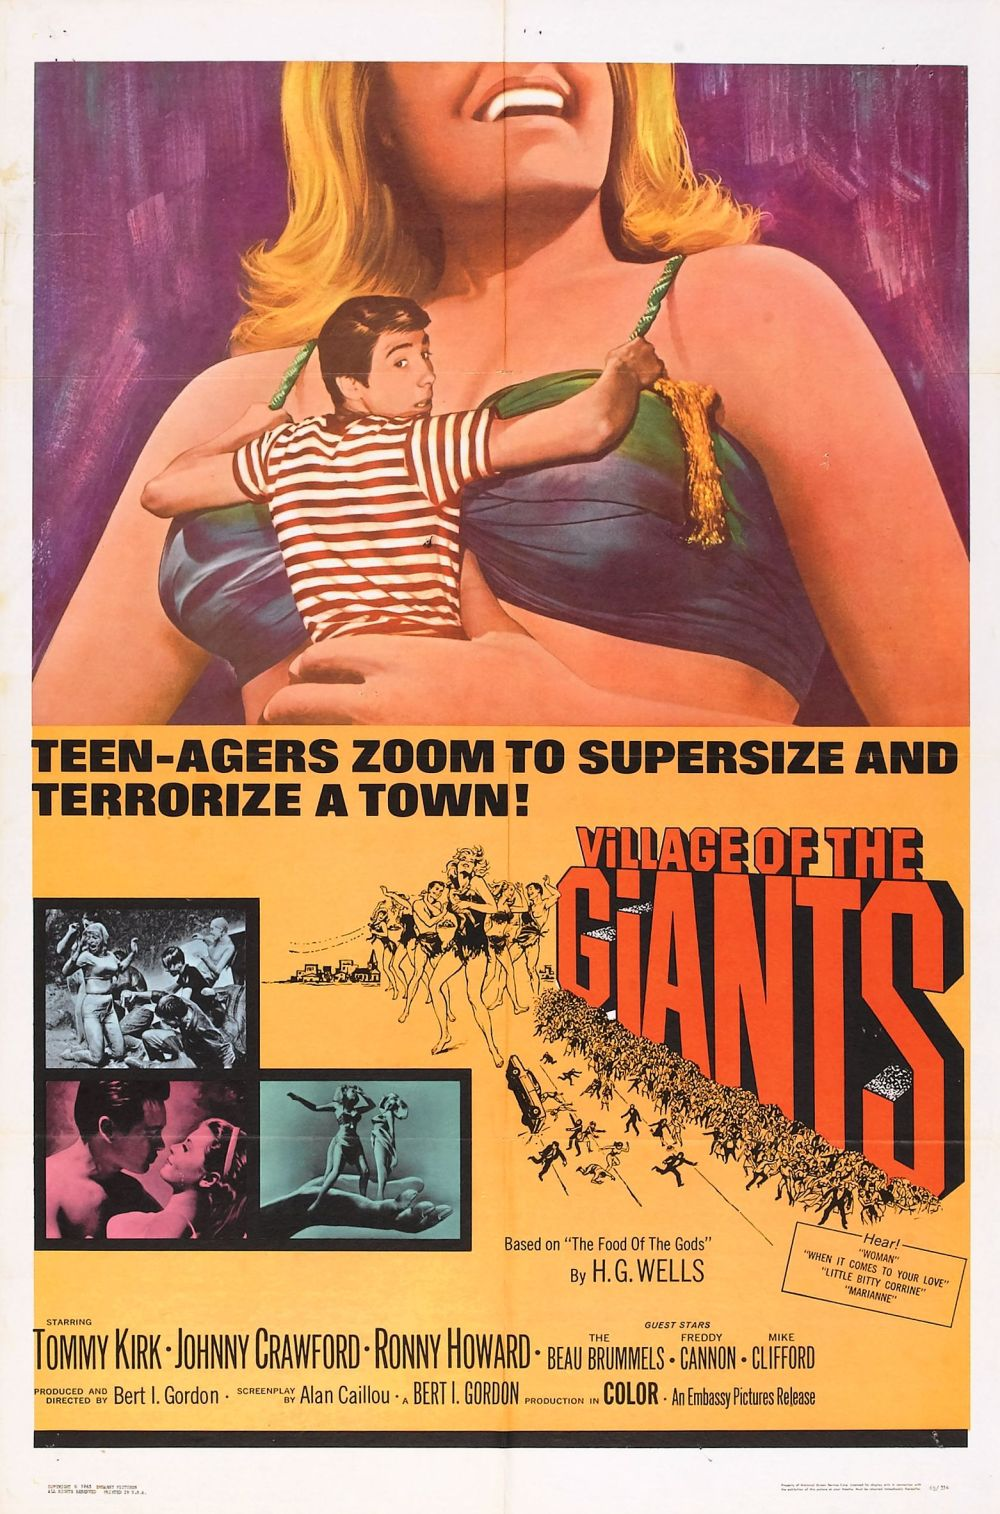 village_of_giants_poster_01